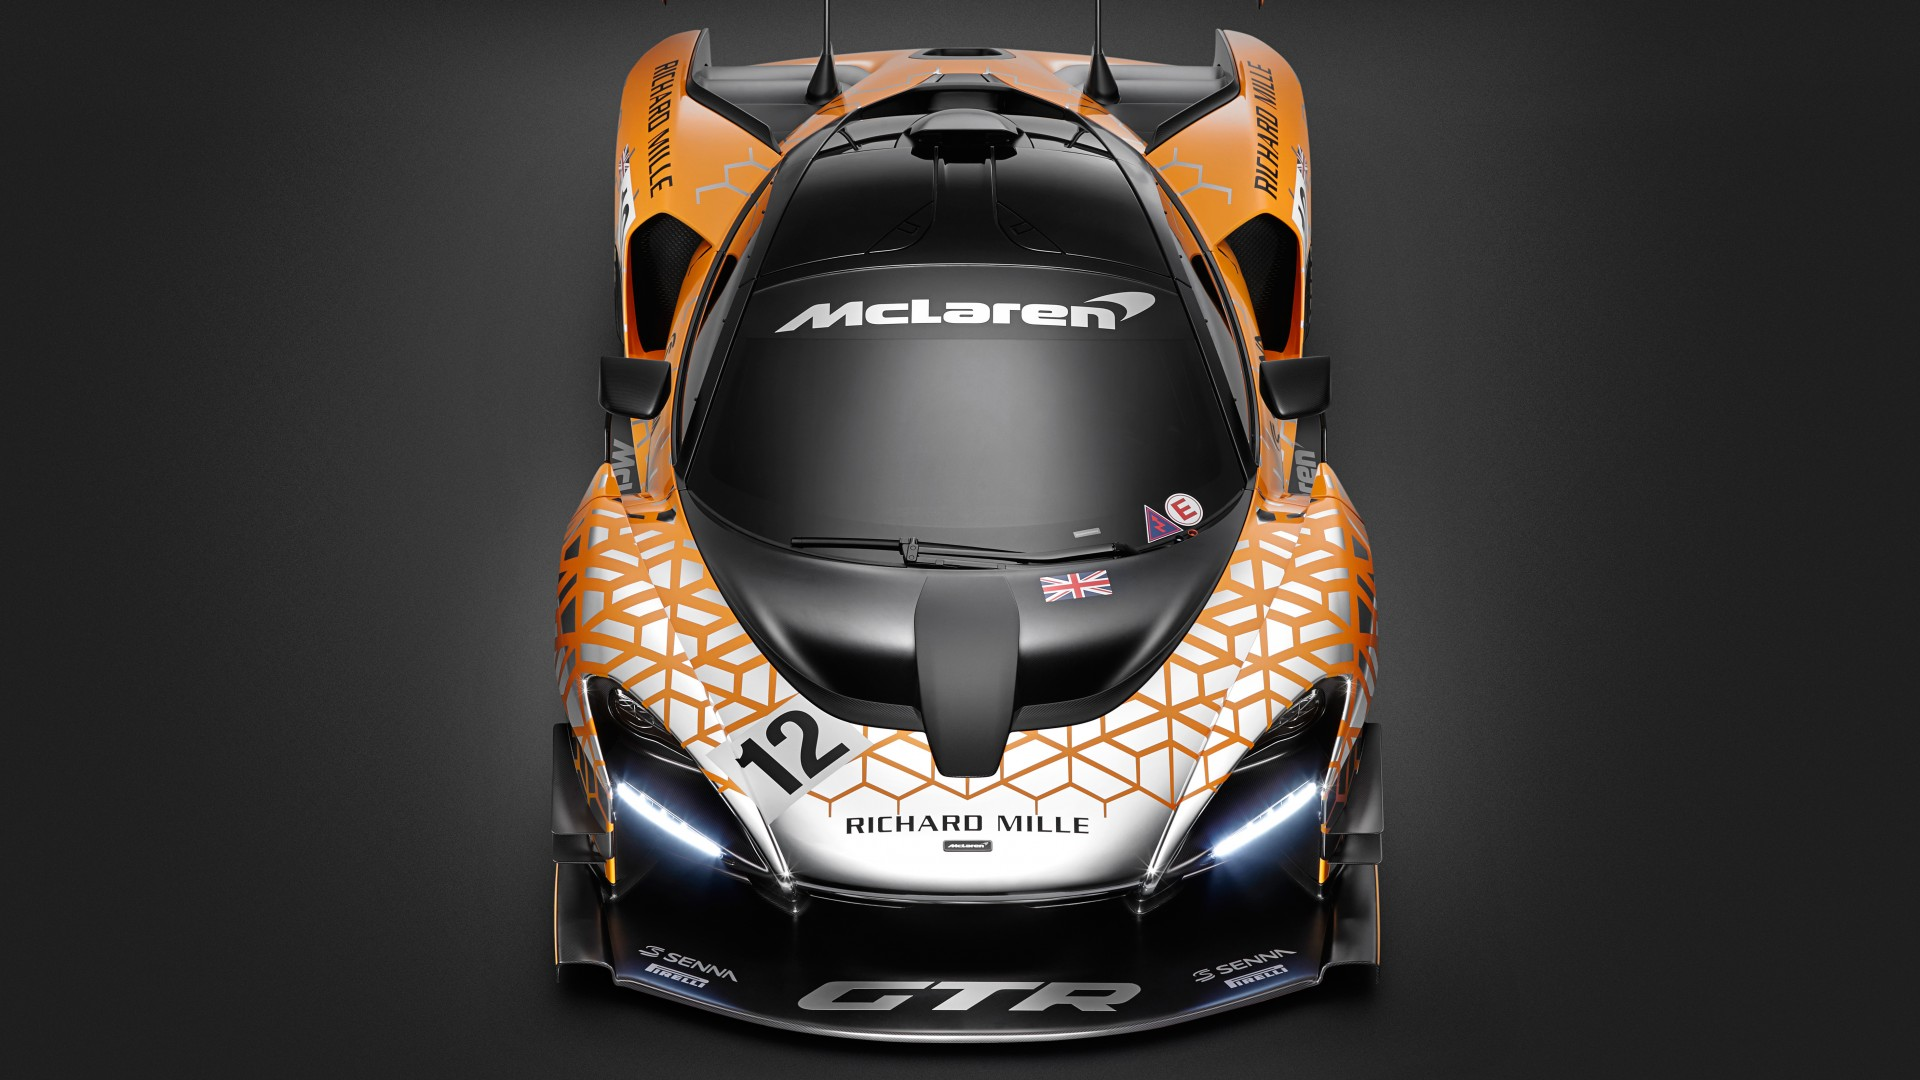 Jaguar Iphone Wallpaper 2019 Mclaren Senna Gtr Concept 5k 2 Wallpaper Hd Car